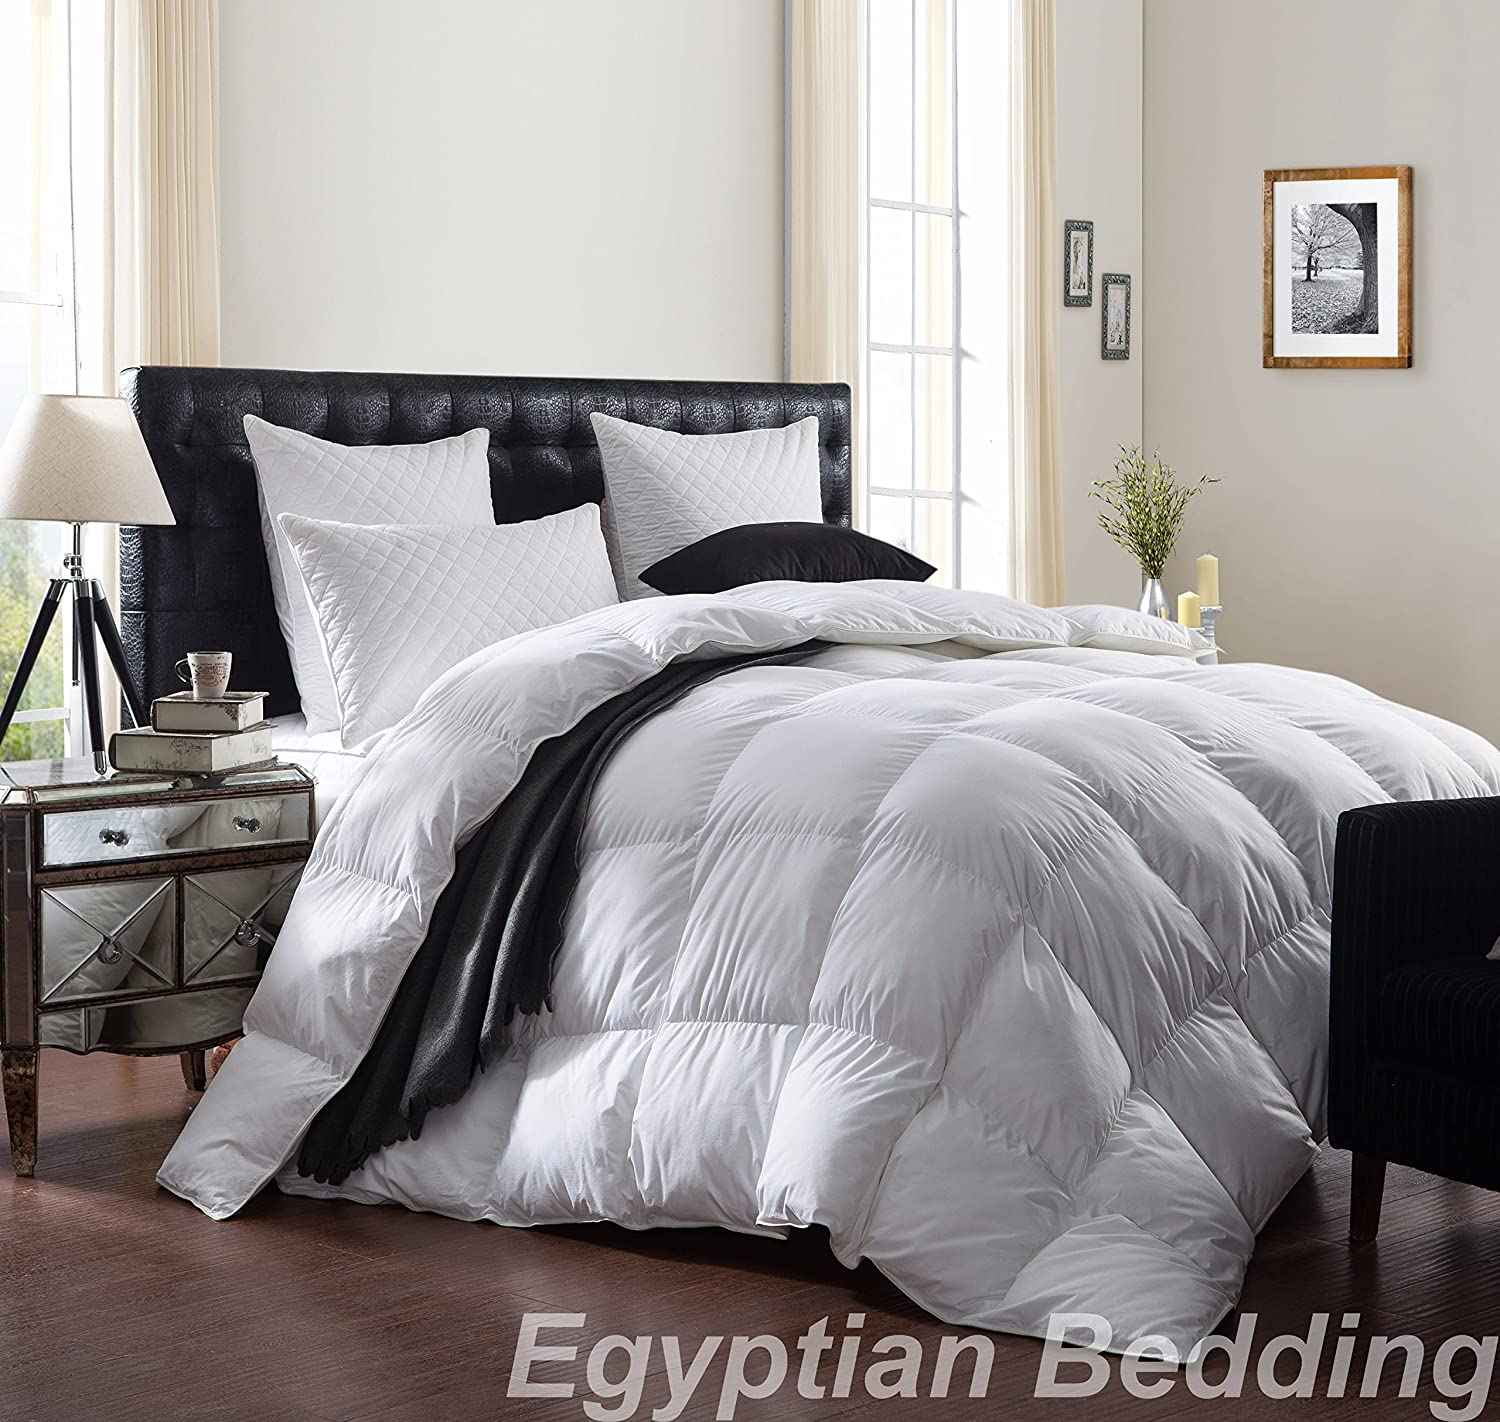 amazoncom luxurious  thread count goose down comforter  californiaking size tc   egyptian cotton cover  fill power  oz fillweight . amazoncom luxurious  thread count goose down comforter